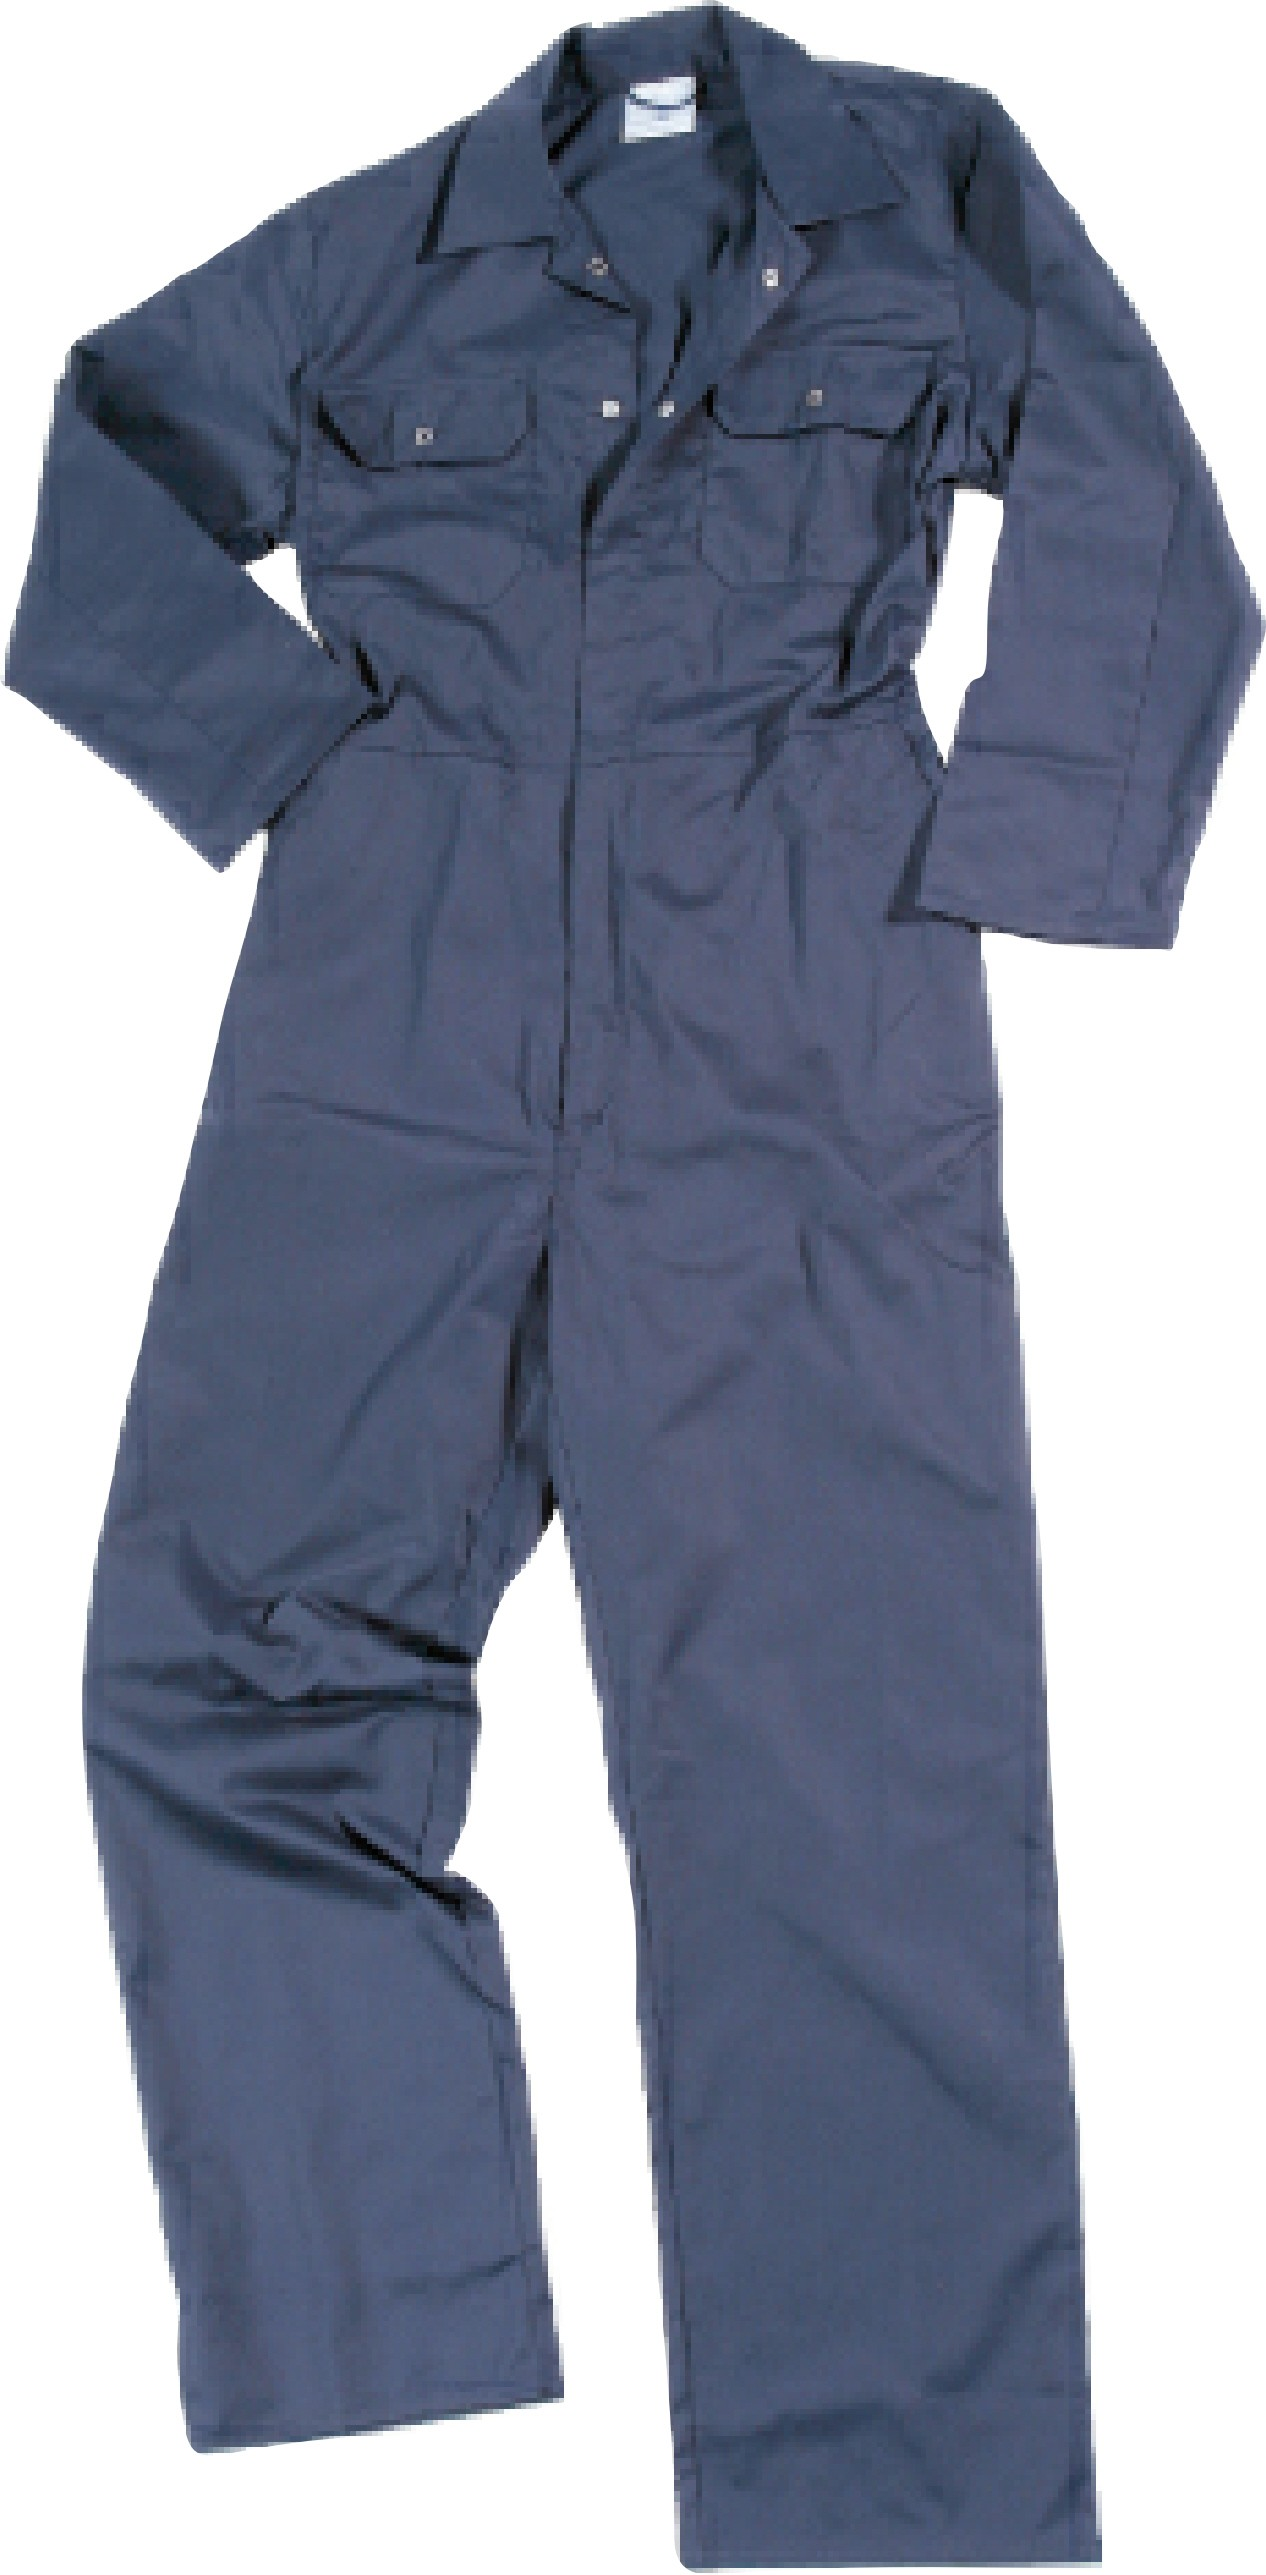 Overalls are a good-looking and affordable solution for many conditions and jobs. They offer extra protection from spills, grease, grime and paint, and they can also bring you an extra layer of .